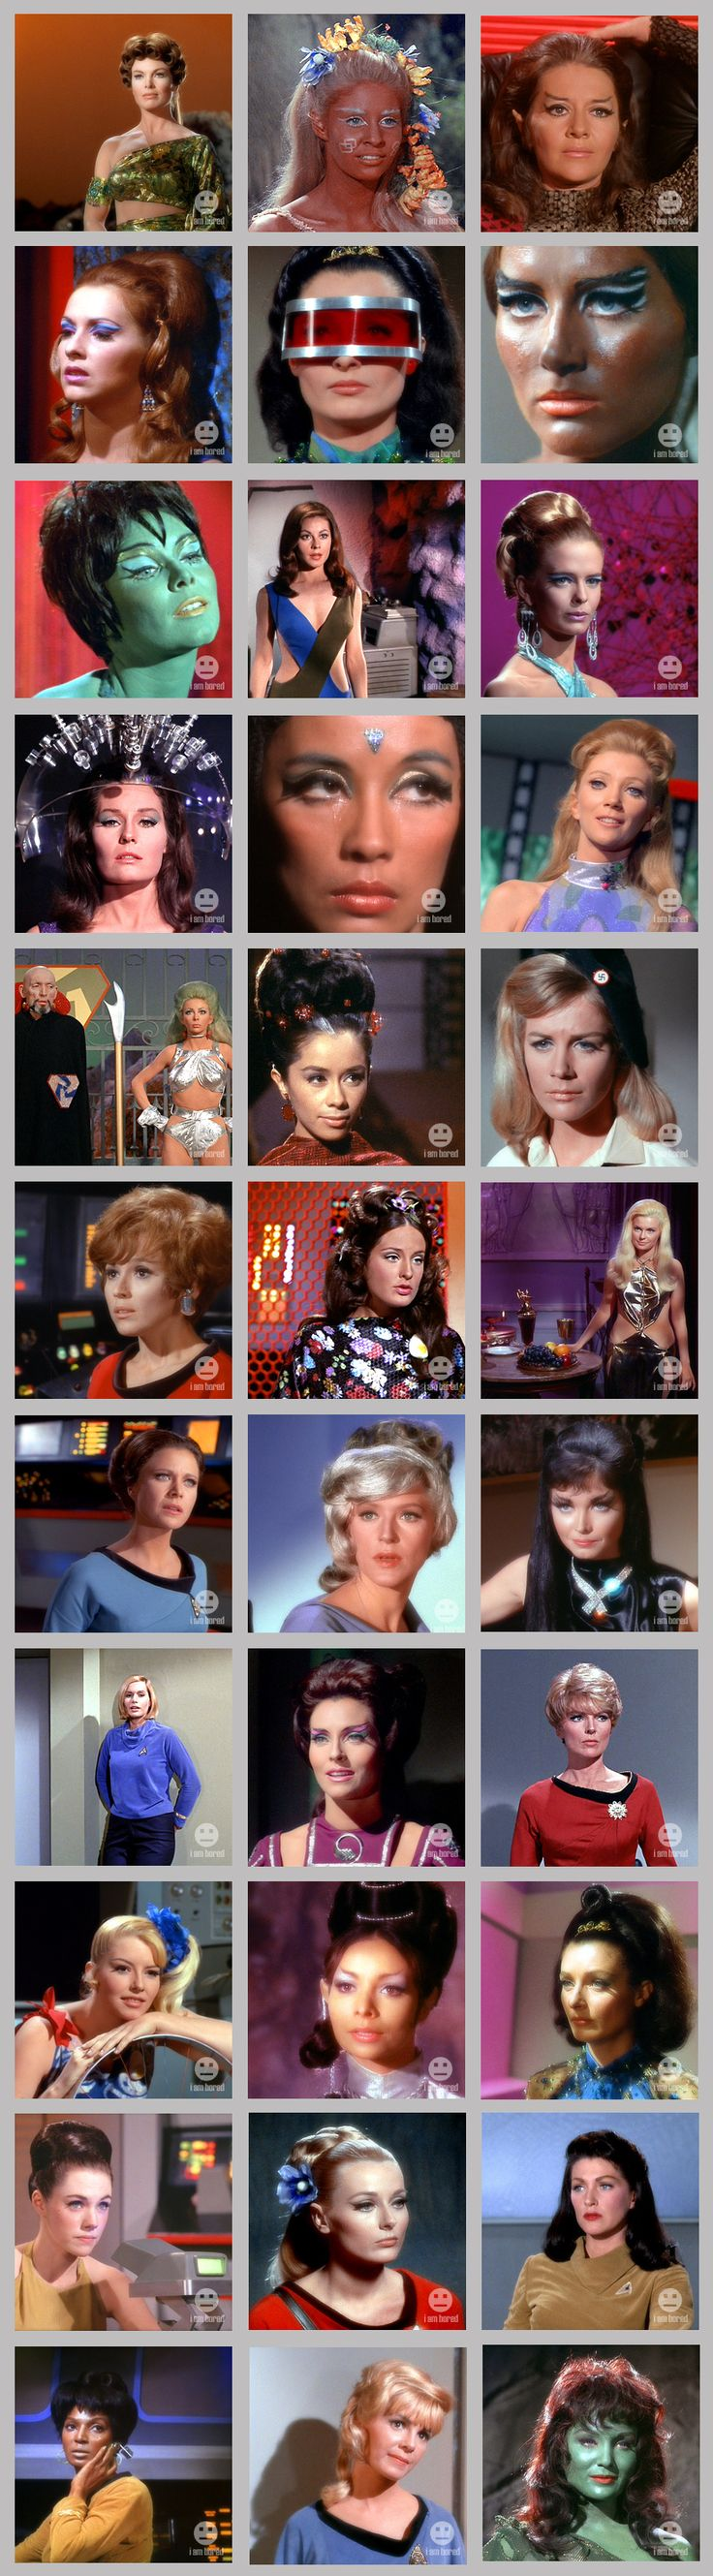 Star Trek Women - number 5 and number 27 are both Diana Muldaur, same episode, same character, same hair, same costume, but with a red visor one time.  I'm glad they left a few out.